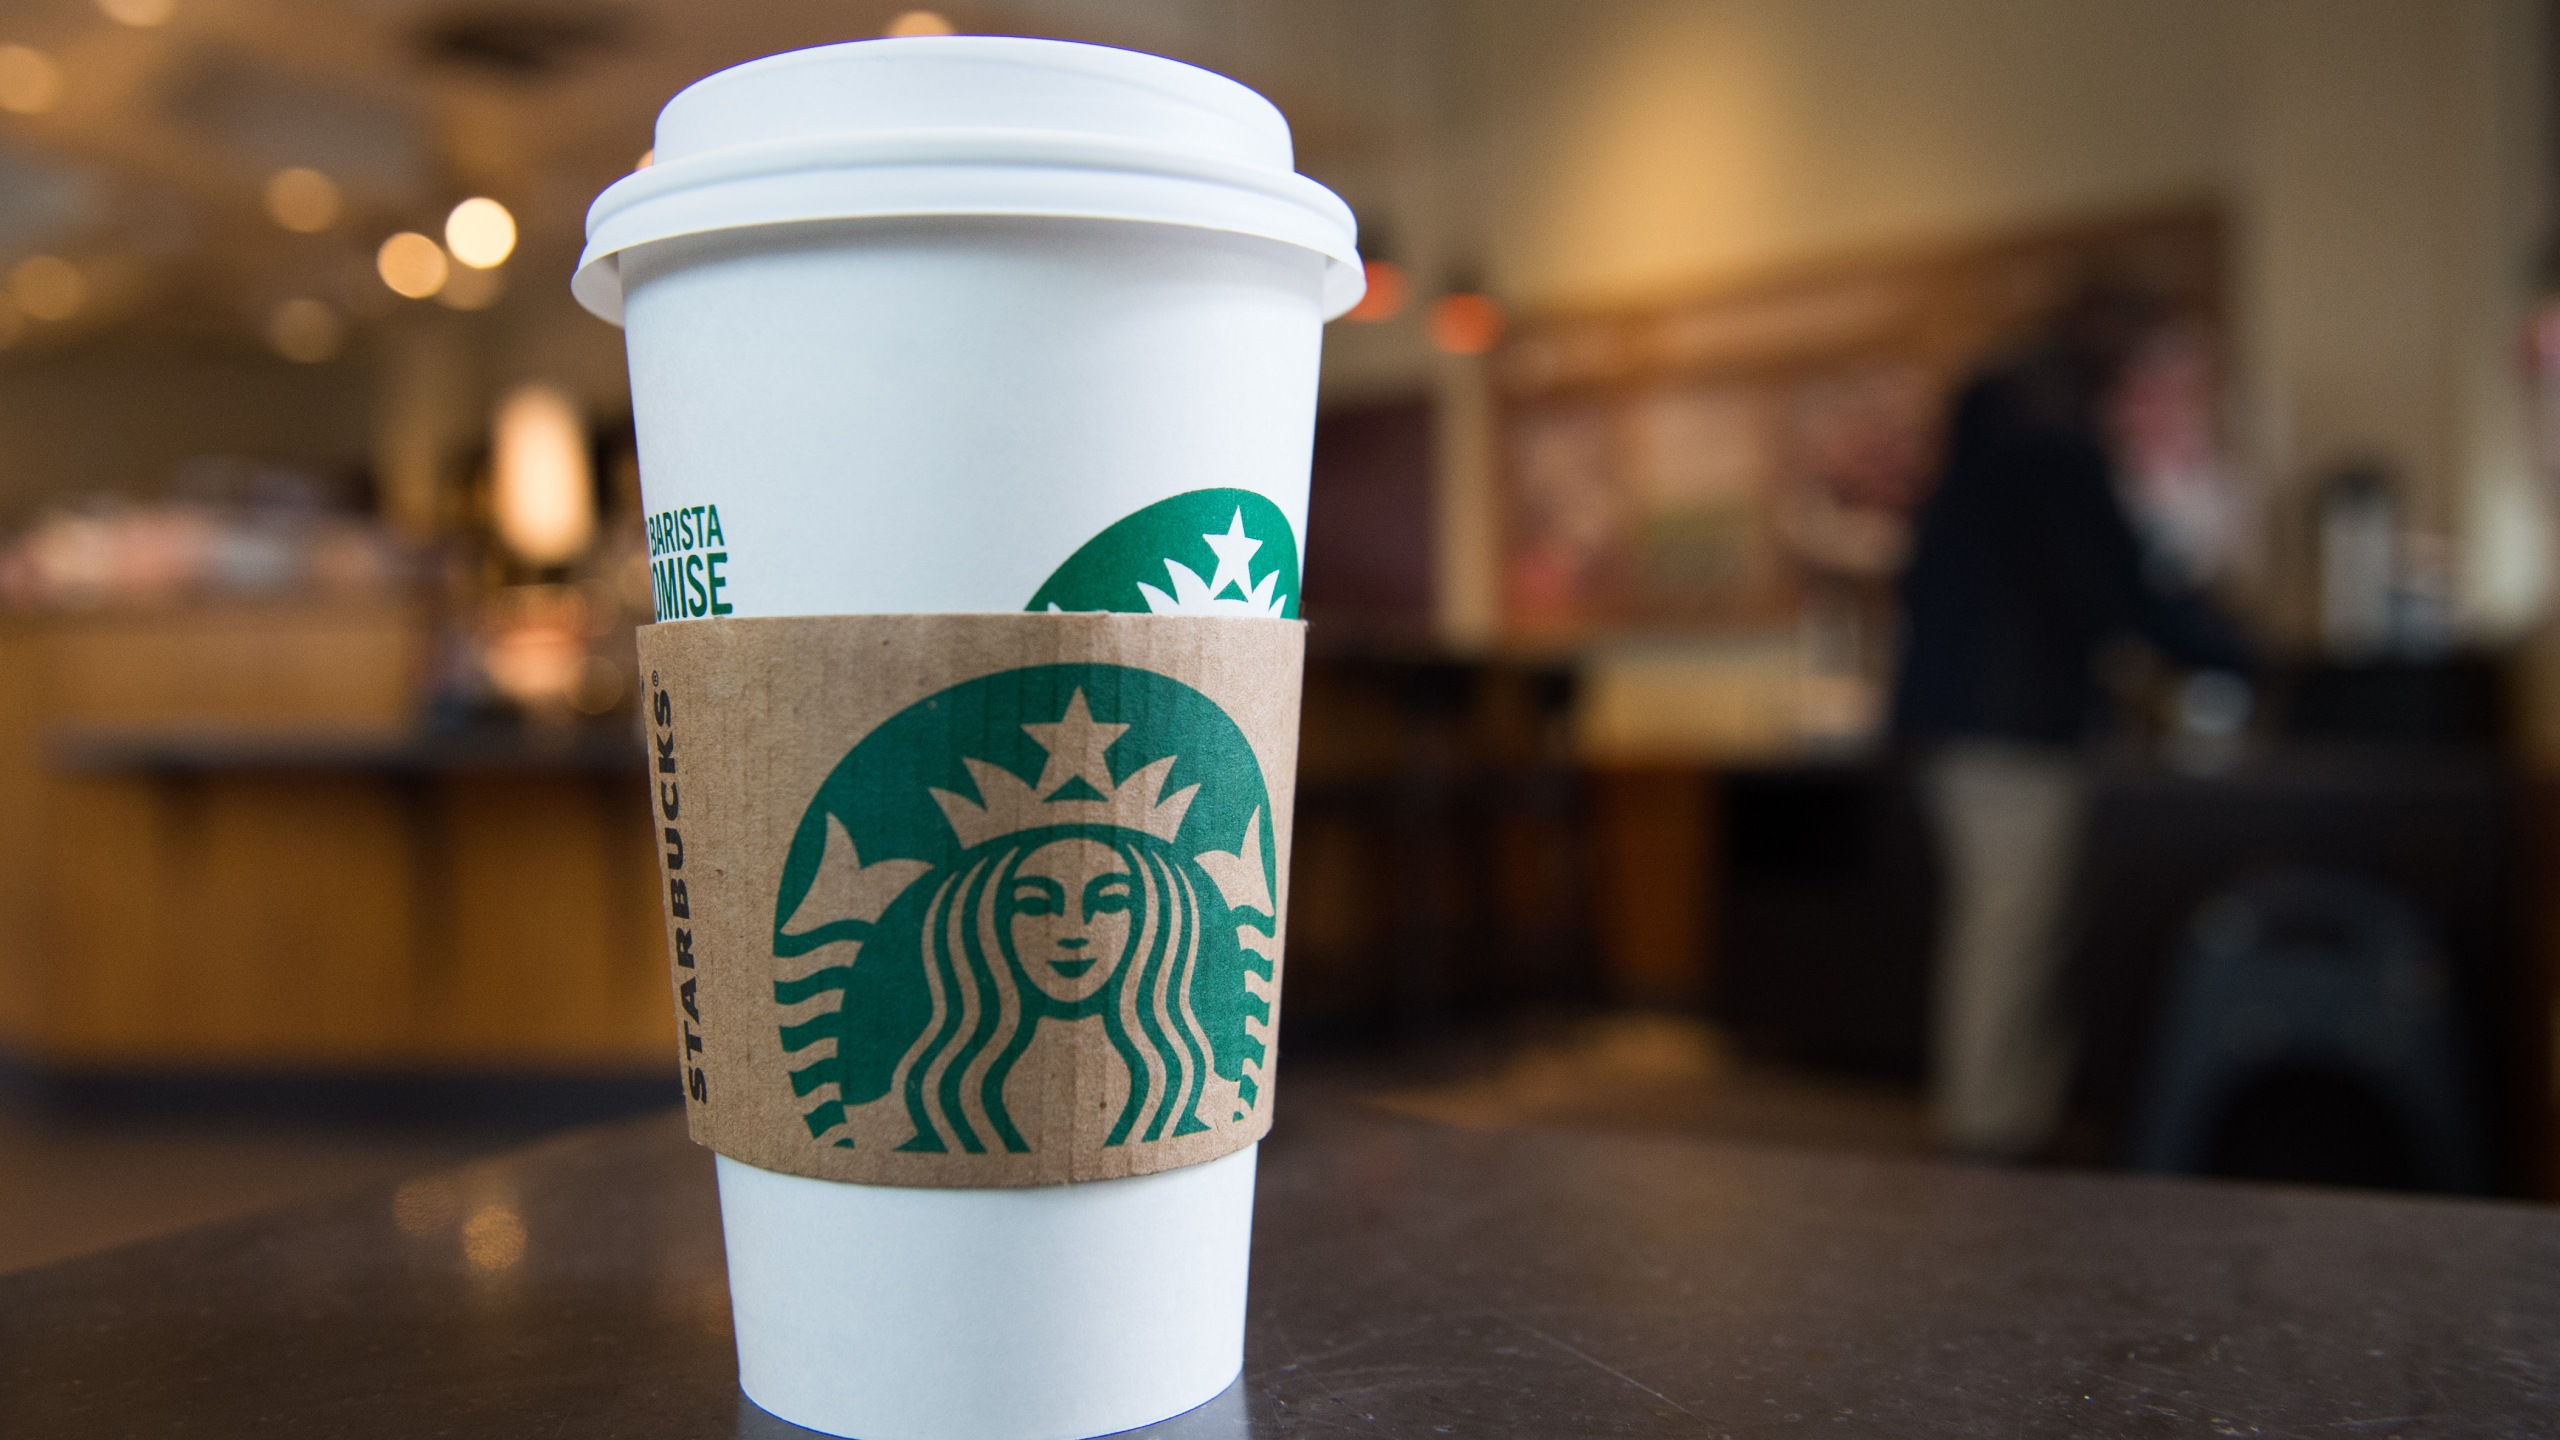 A Starbucks coffee cup is seen inside a Starbucks Coffee shop in Washington, DC, on April 17, 2018. (Credit: Saul Loeb/AFP/Getty Images)